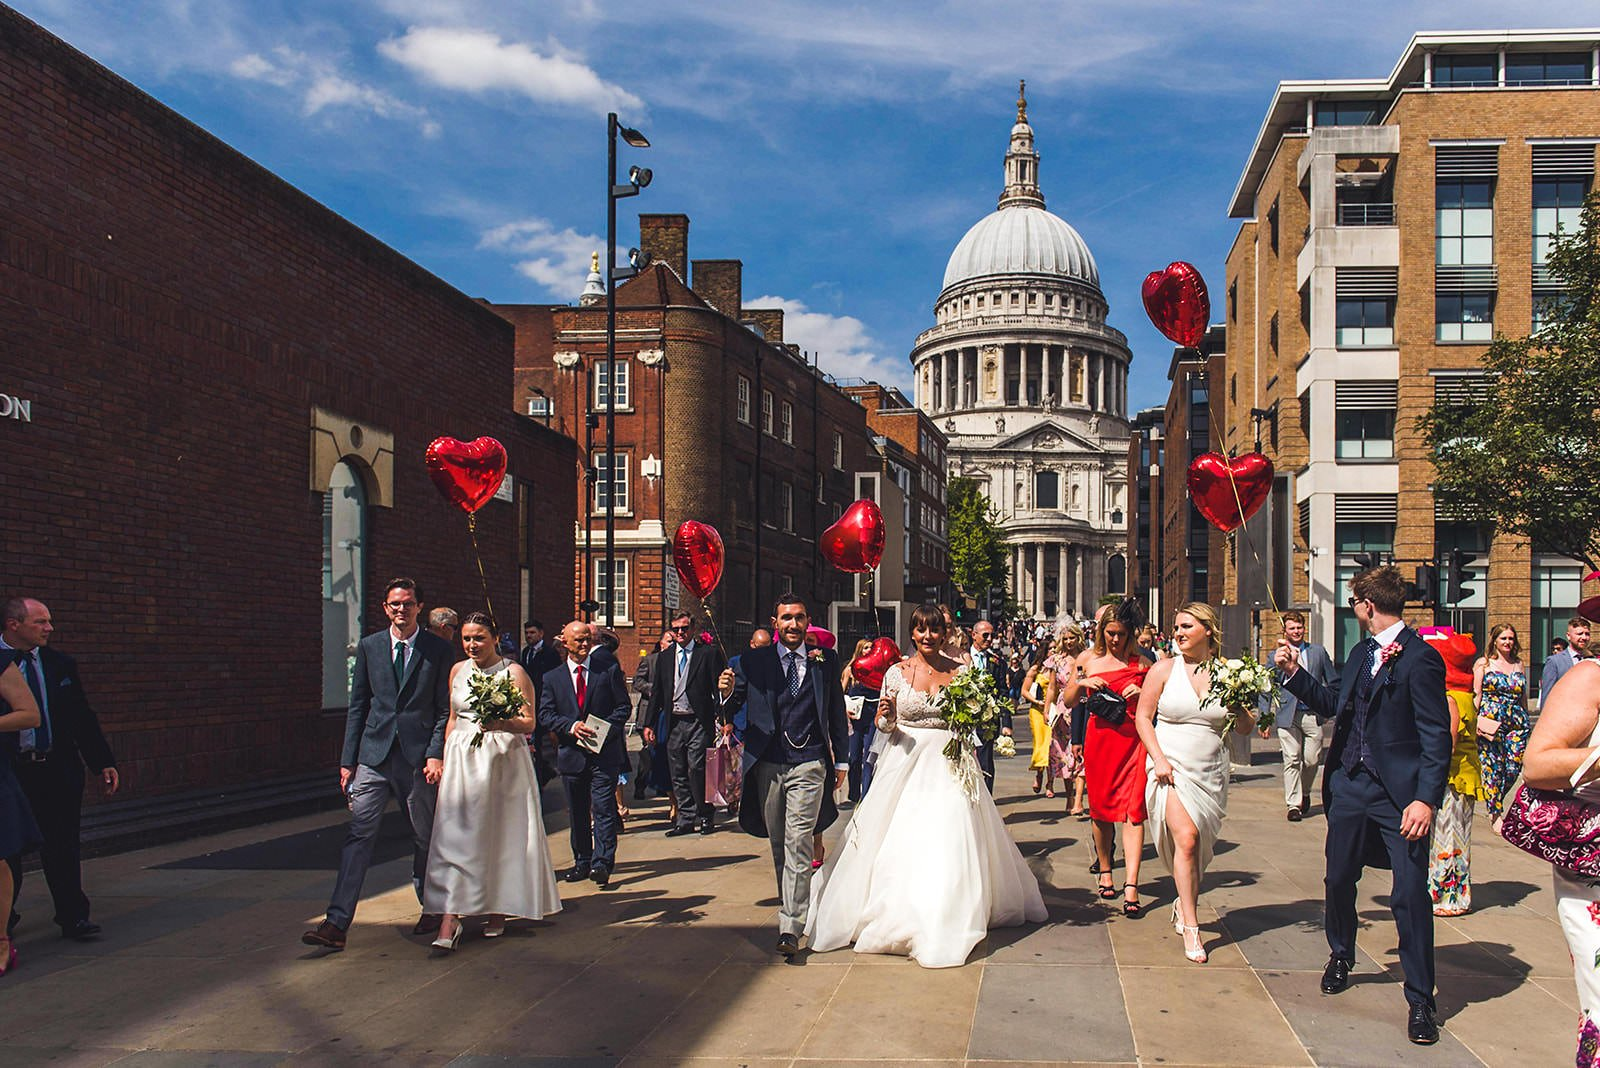 London wedding procession in front of St Pauls